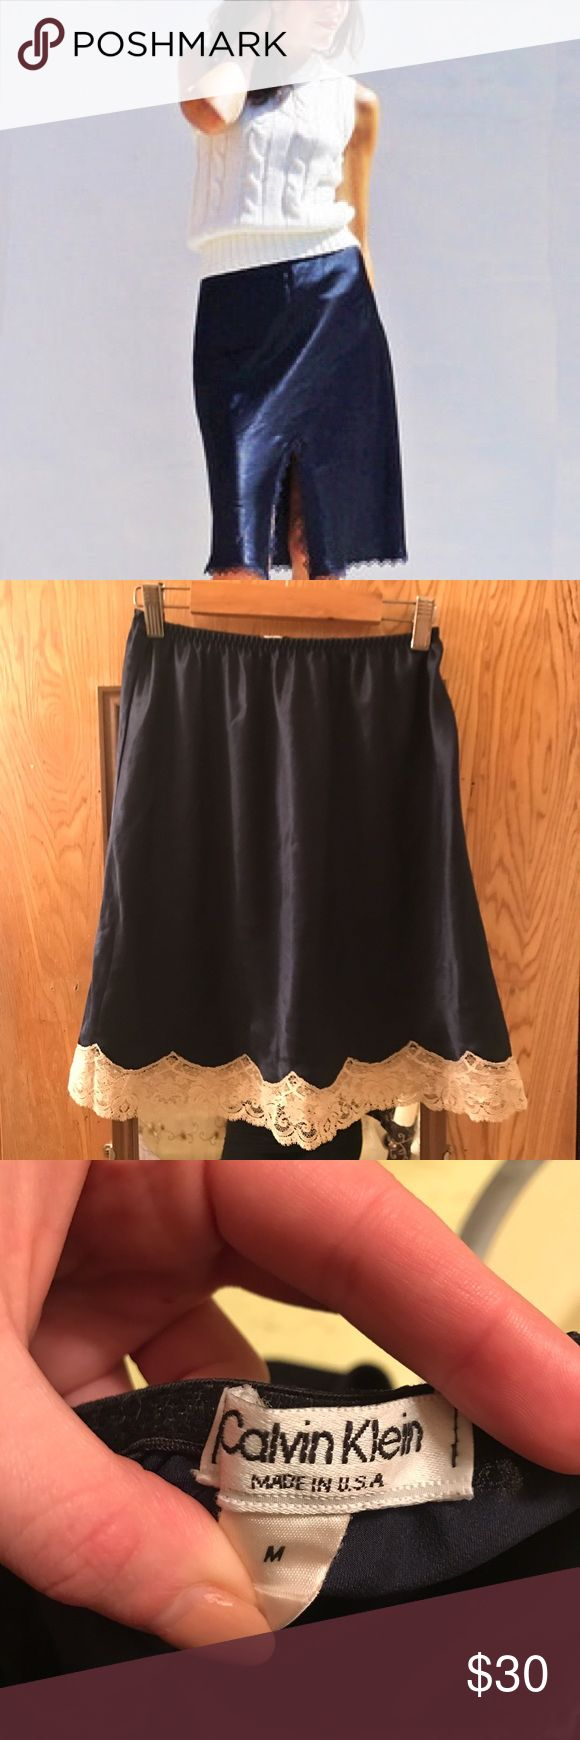 Calvin Klein navy silk and lace slip skirt Gorgeous Calvin Klein navy silk and lace slip skirt made in USA can fit size small-medium. Such a luxurious texture and color! Can be worn high waisted as mini or longer knee length if placed on hips. Trim is a cream delicate lace Calvin Klein Skirts Midi